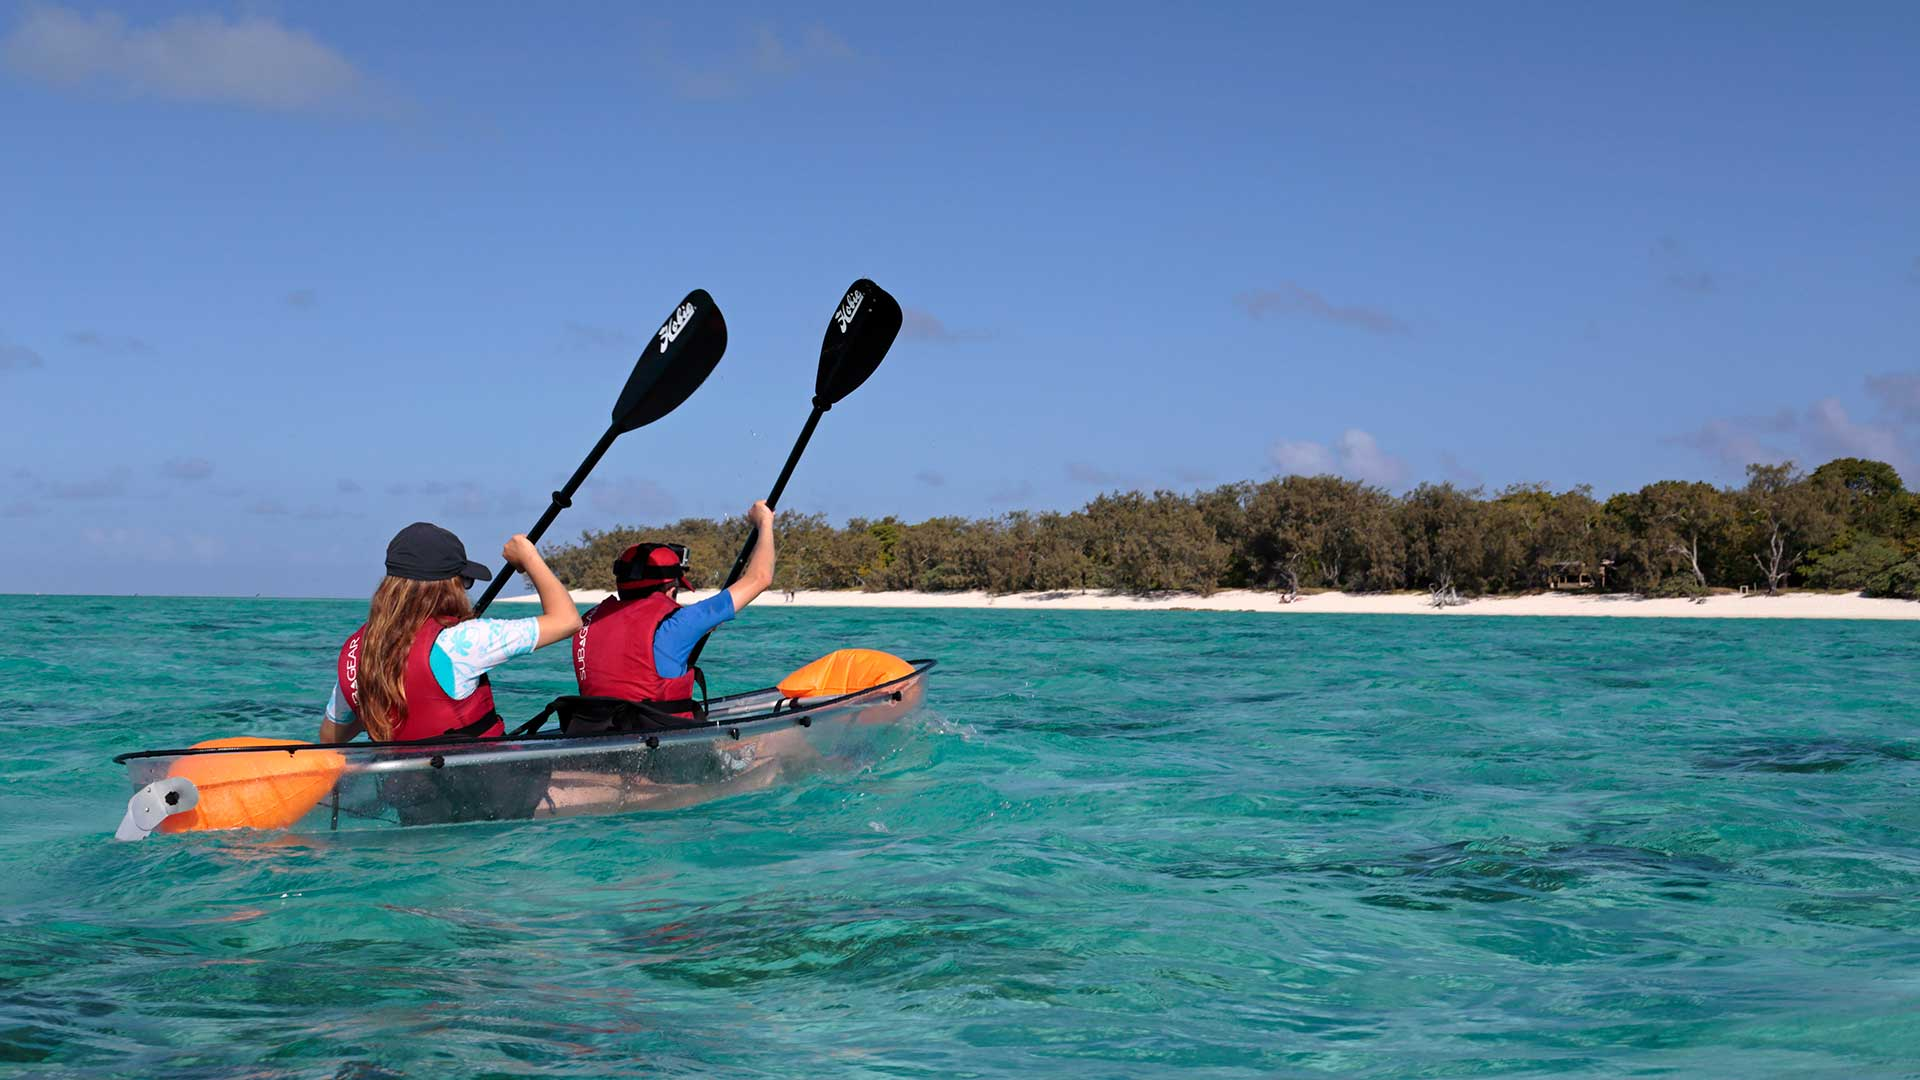 Kayaking across the lagoon at Heron Island on the Great Barrier Reef, Queensland, Australia